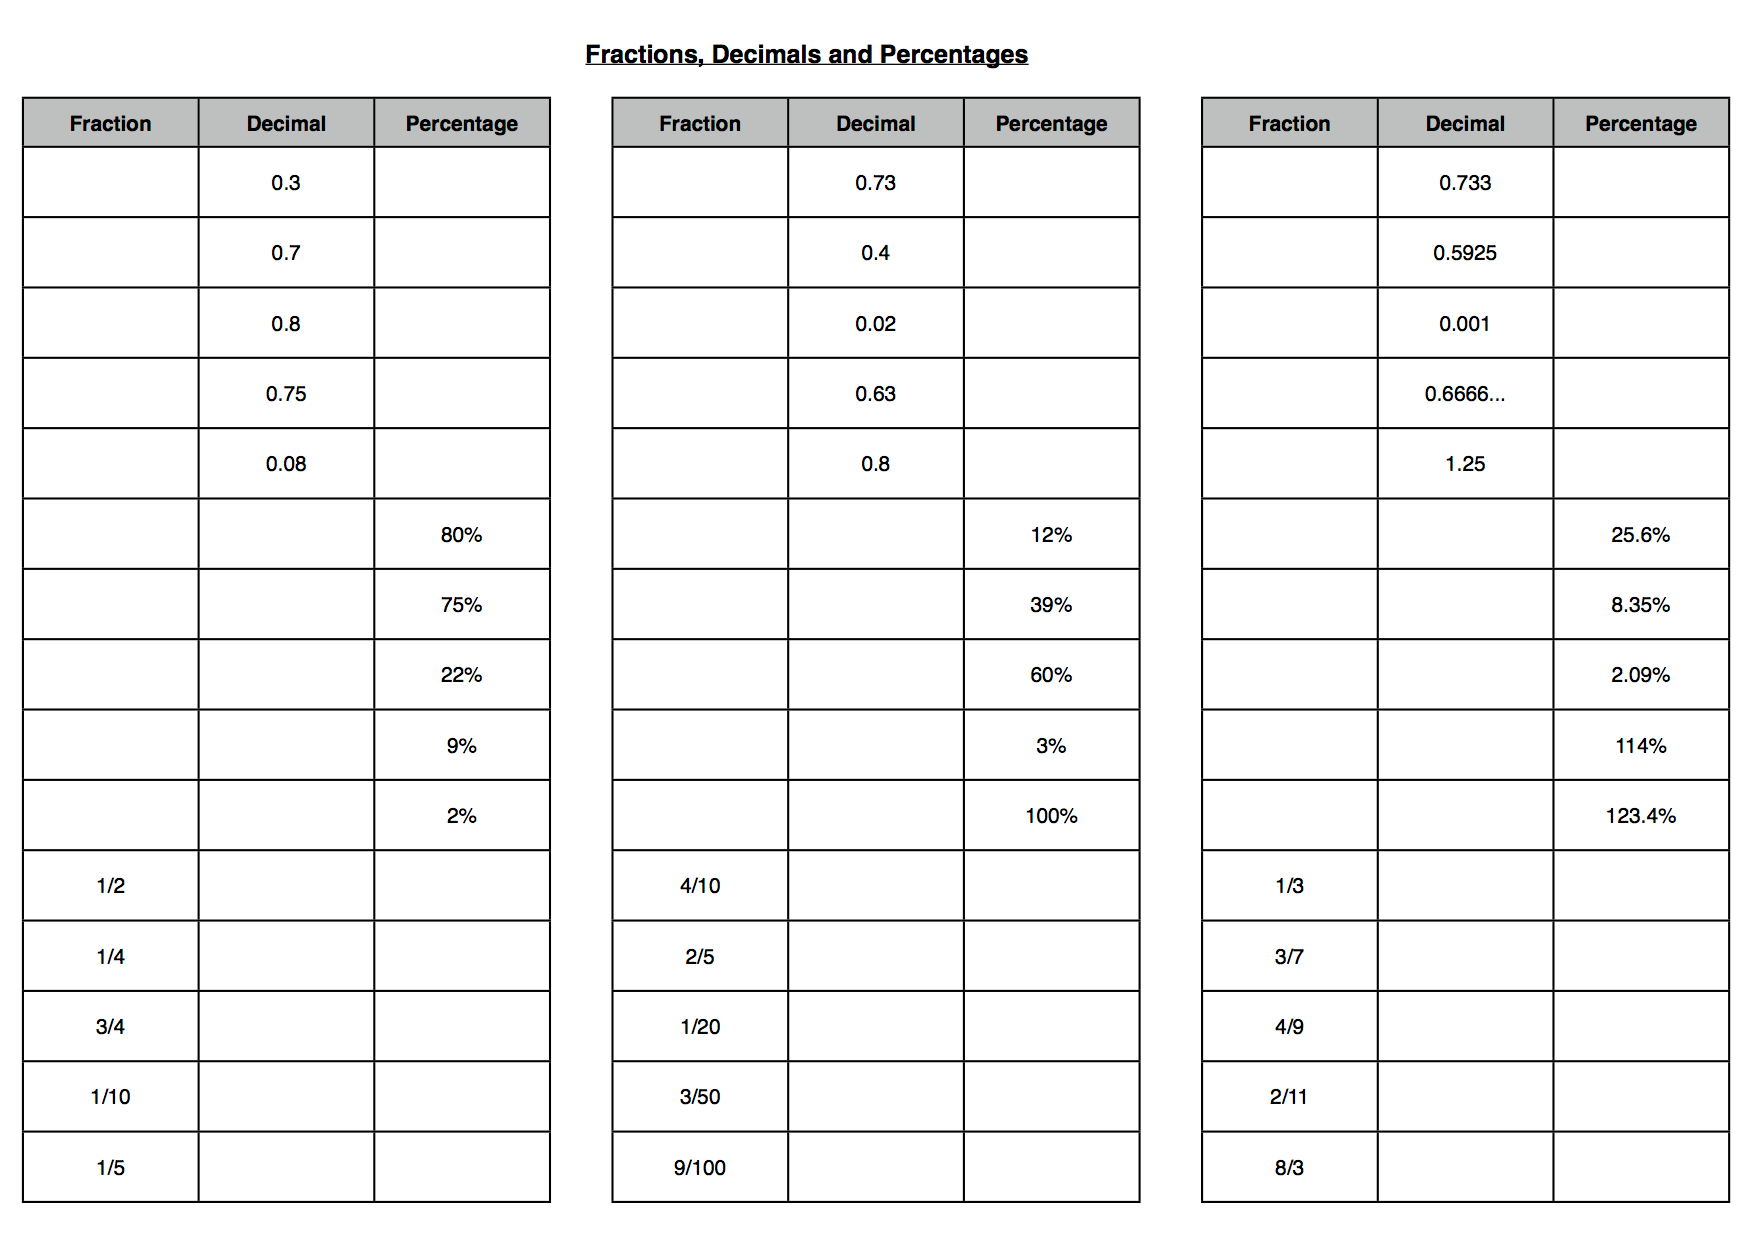 Worksheets Converting Fractions To Decimals Worksheet fractions decimals and percentages conversion notes grid 2